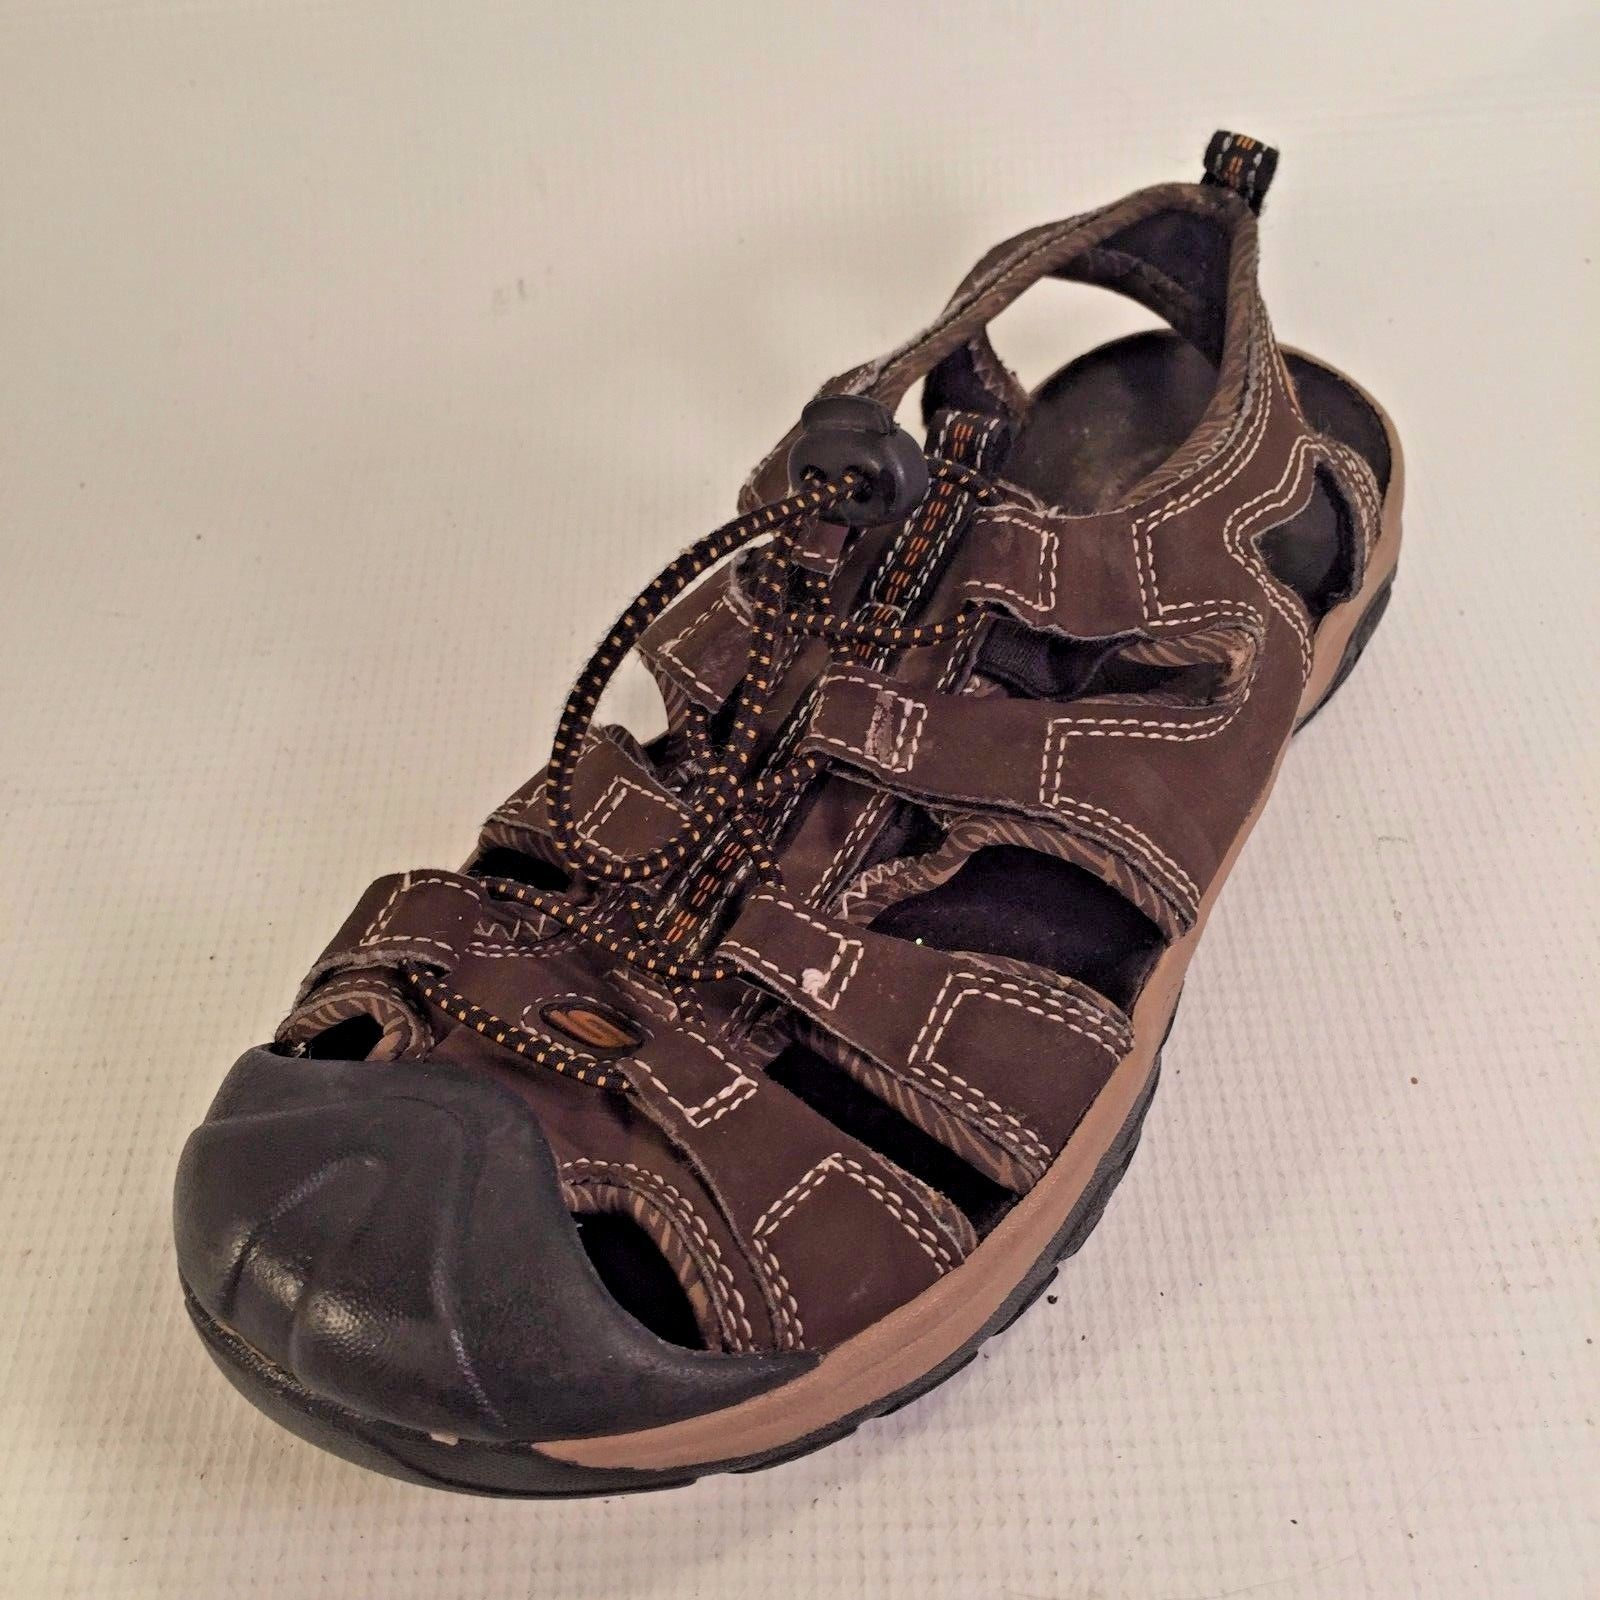 SKECHERS Youth Kids Size 3 Brown Fisherman Sandals BUNGEE 35 EUR